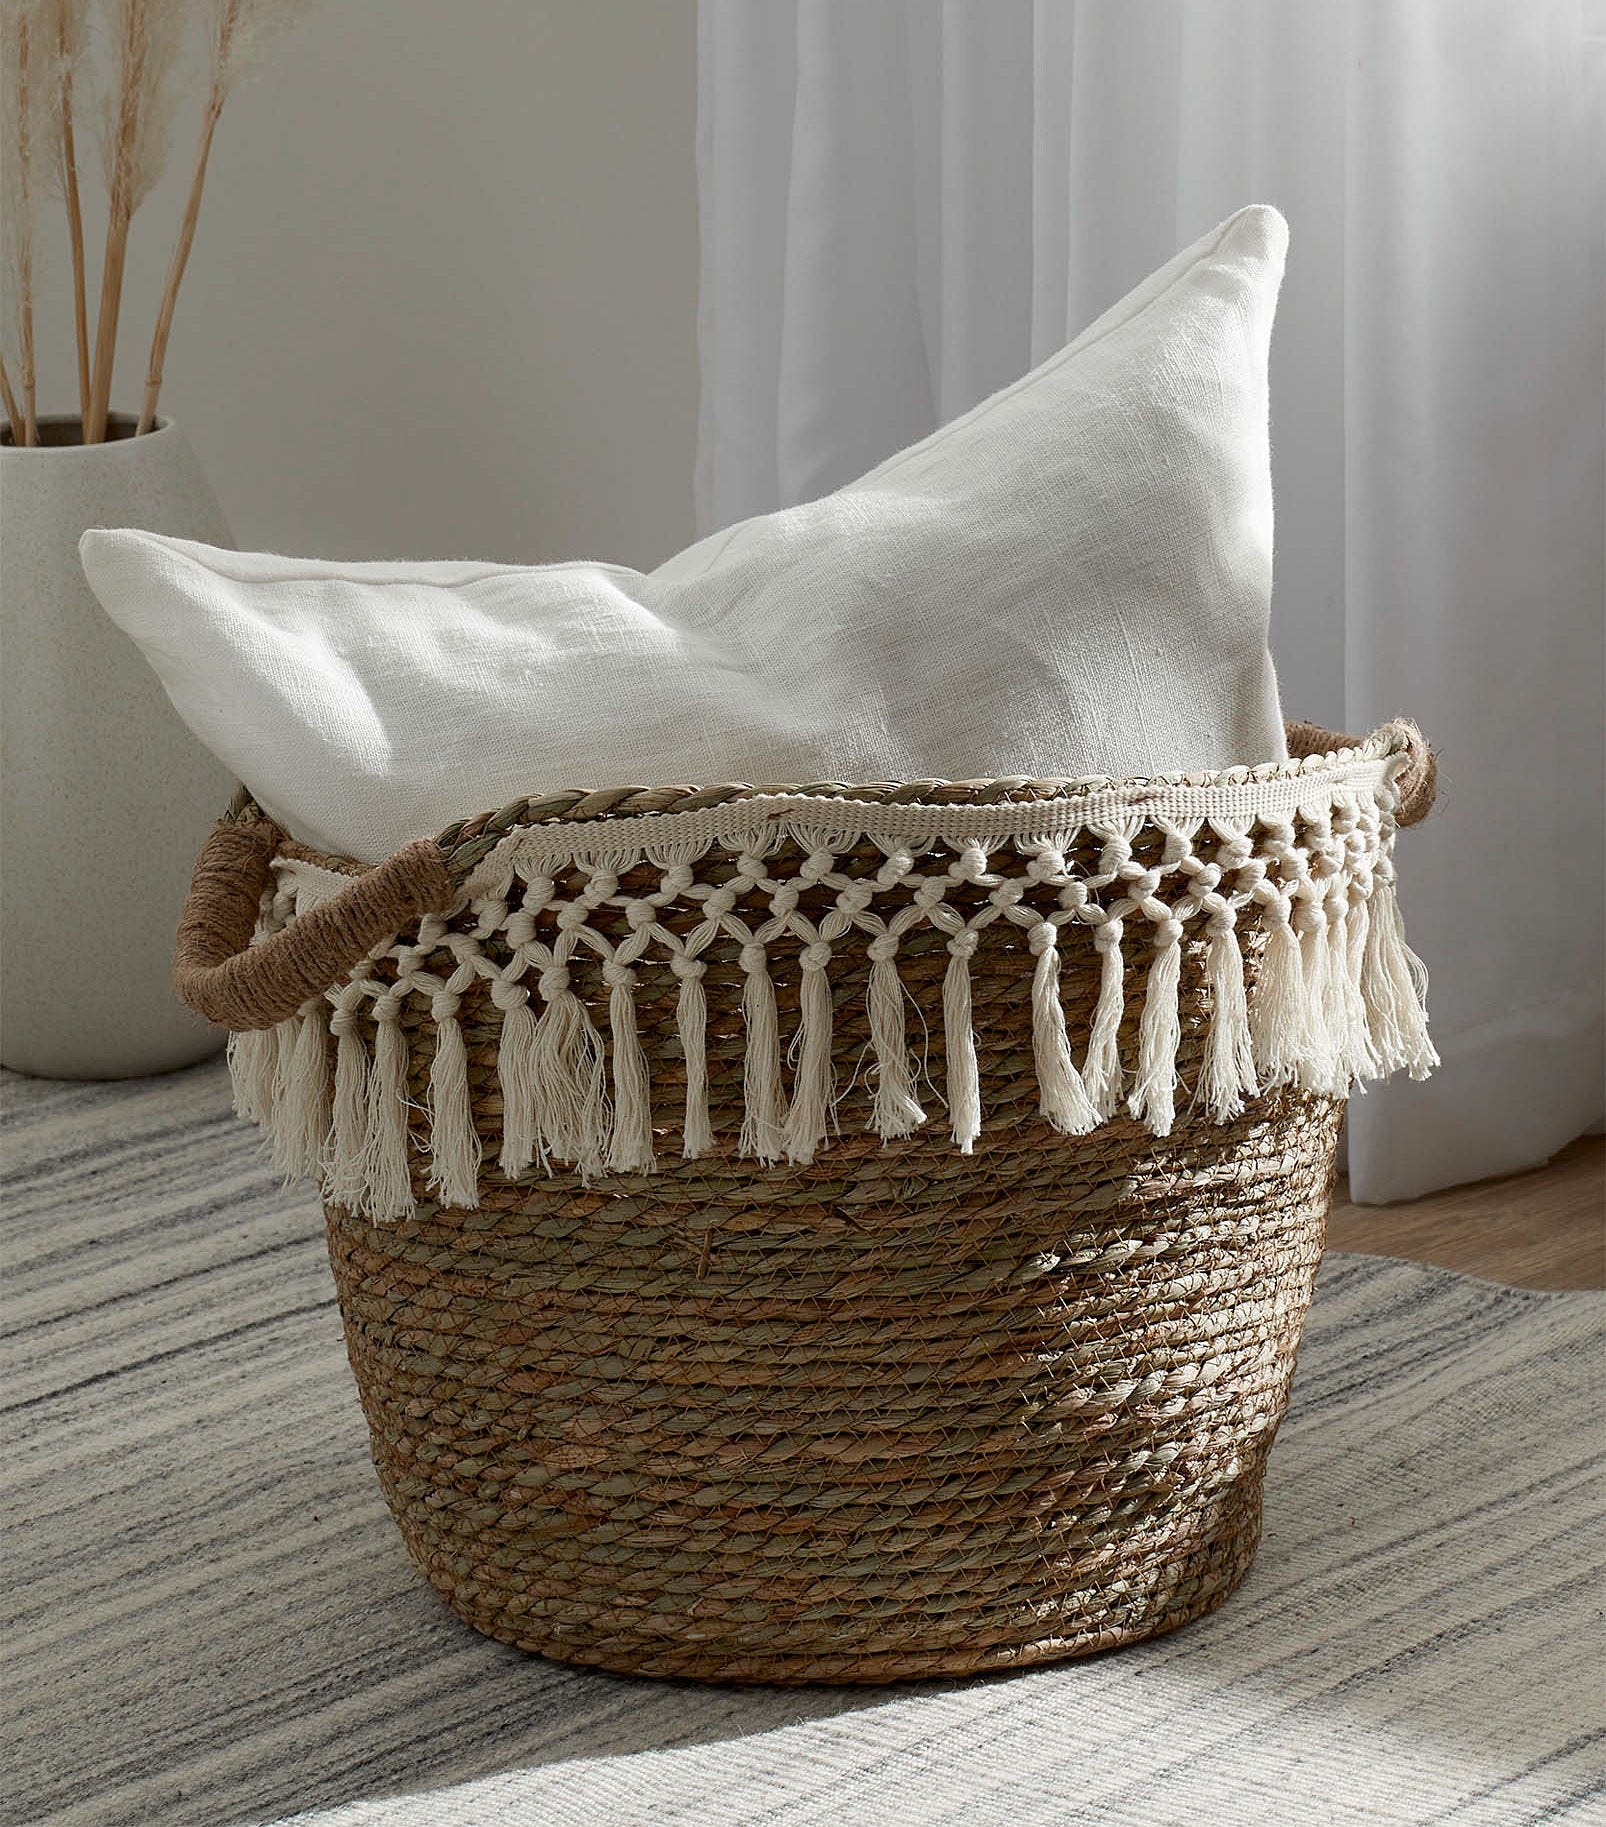 a stylish basket with a macrame fringe around the top and a pillow inside